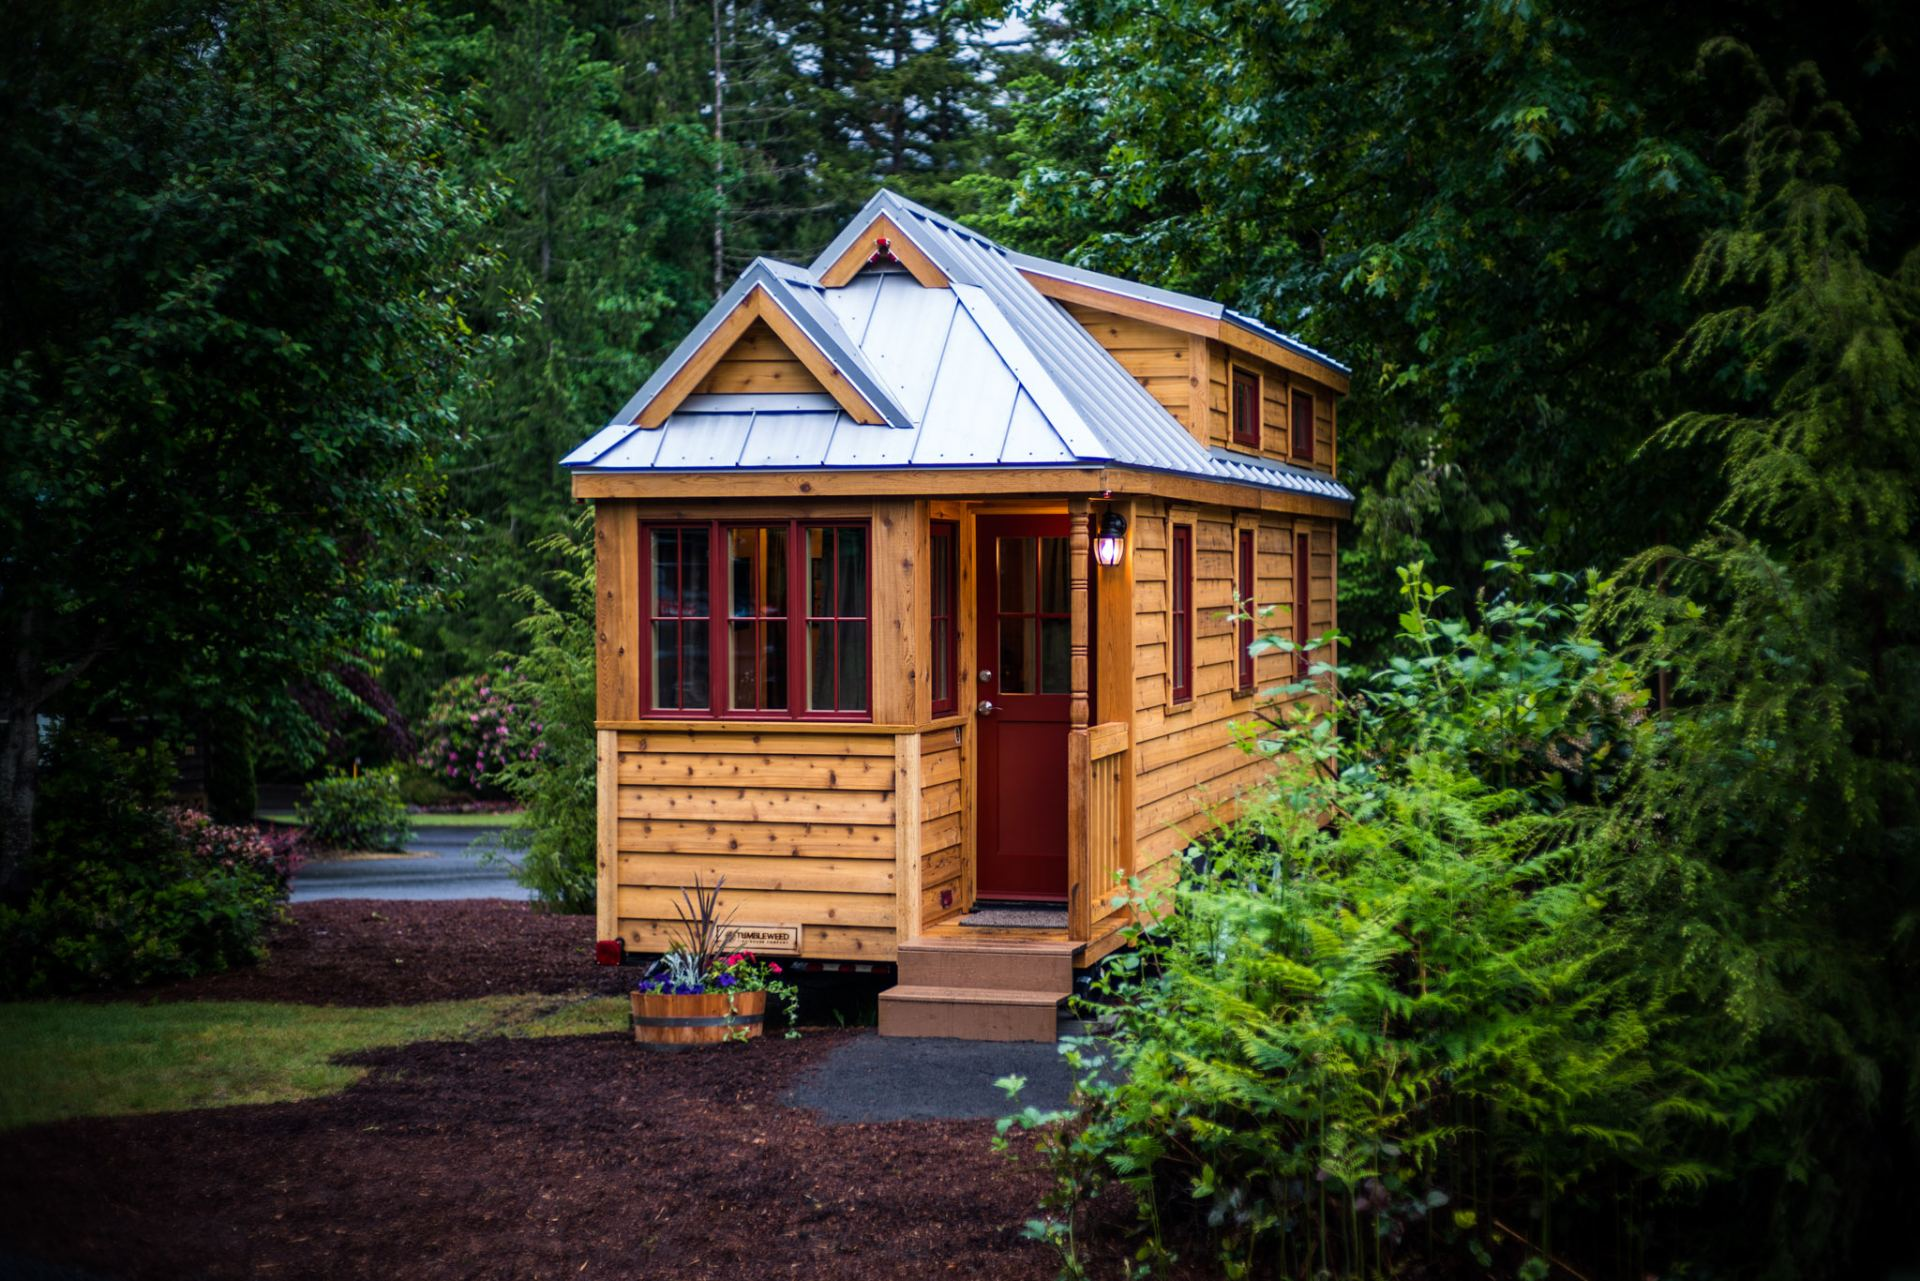 Tiny House Giant Journey A Blog About Living Small and Traveling